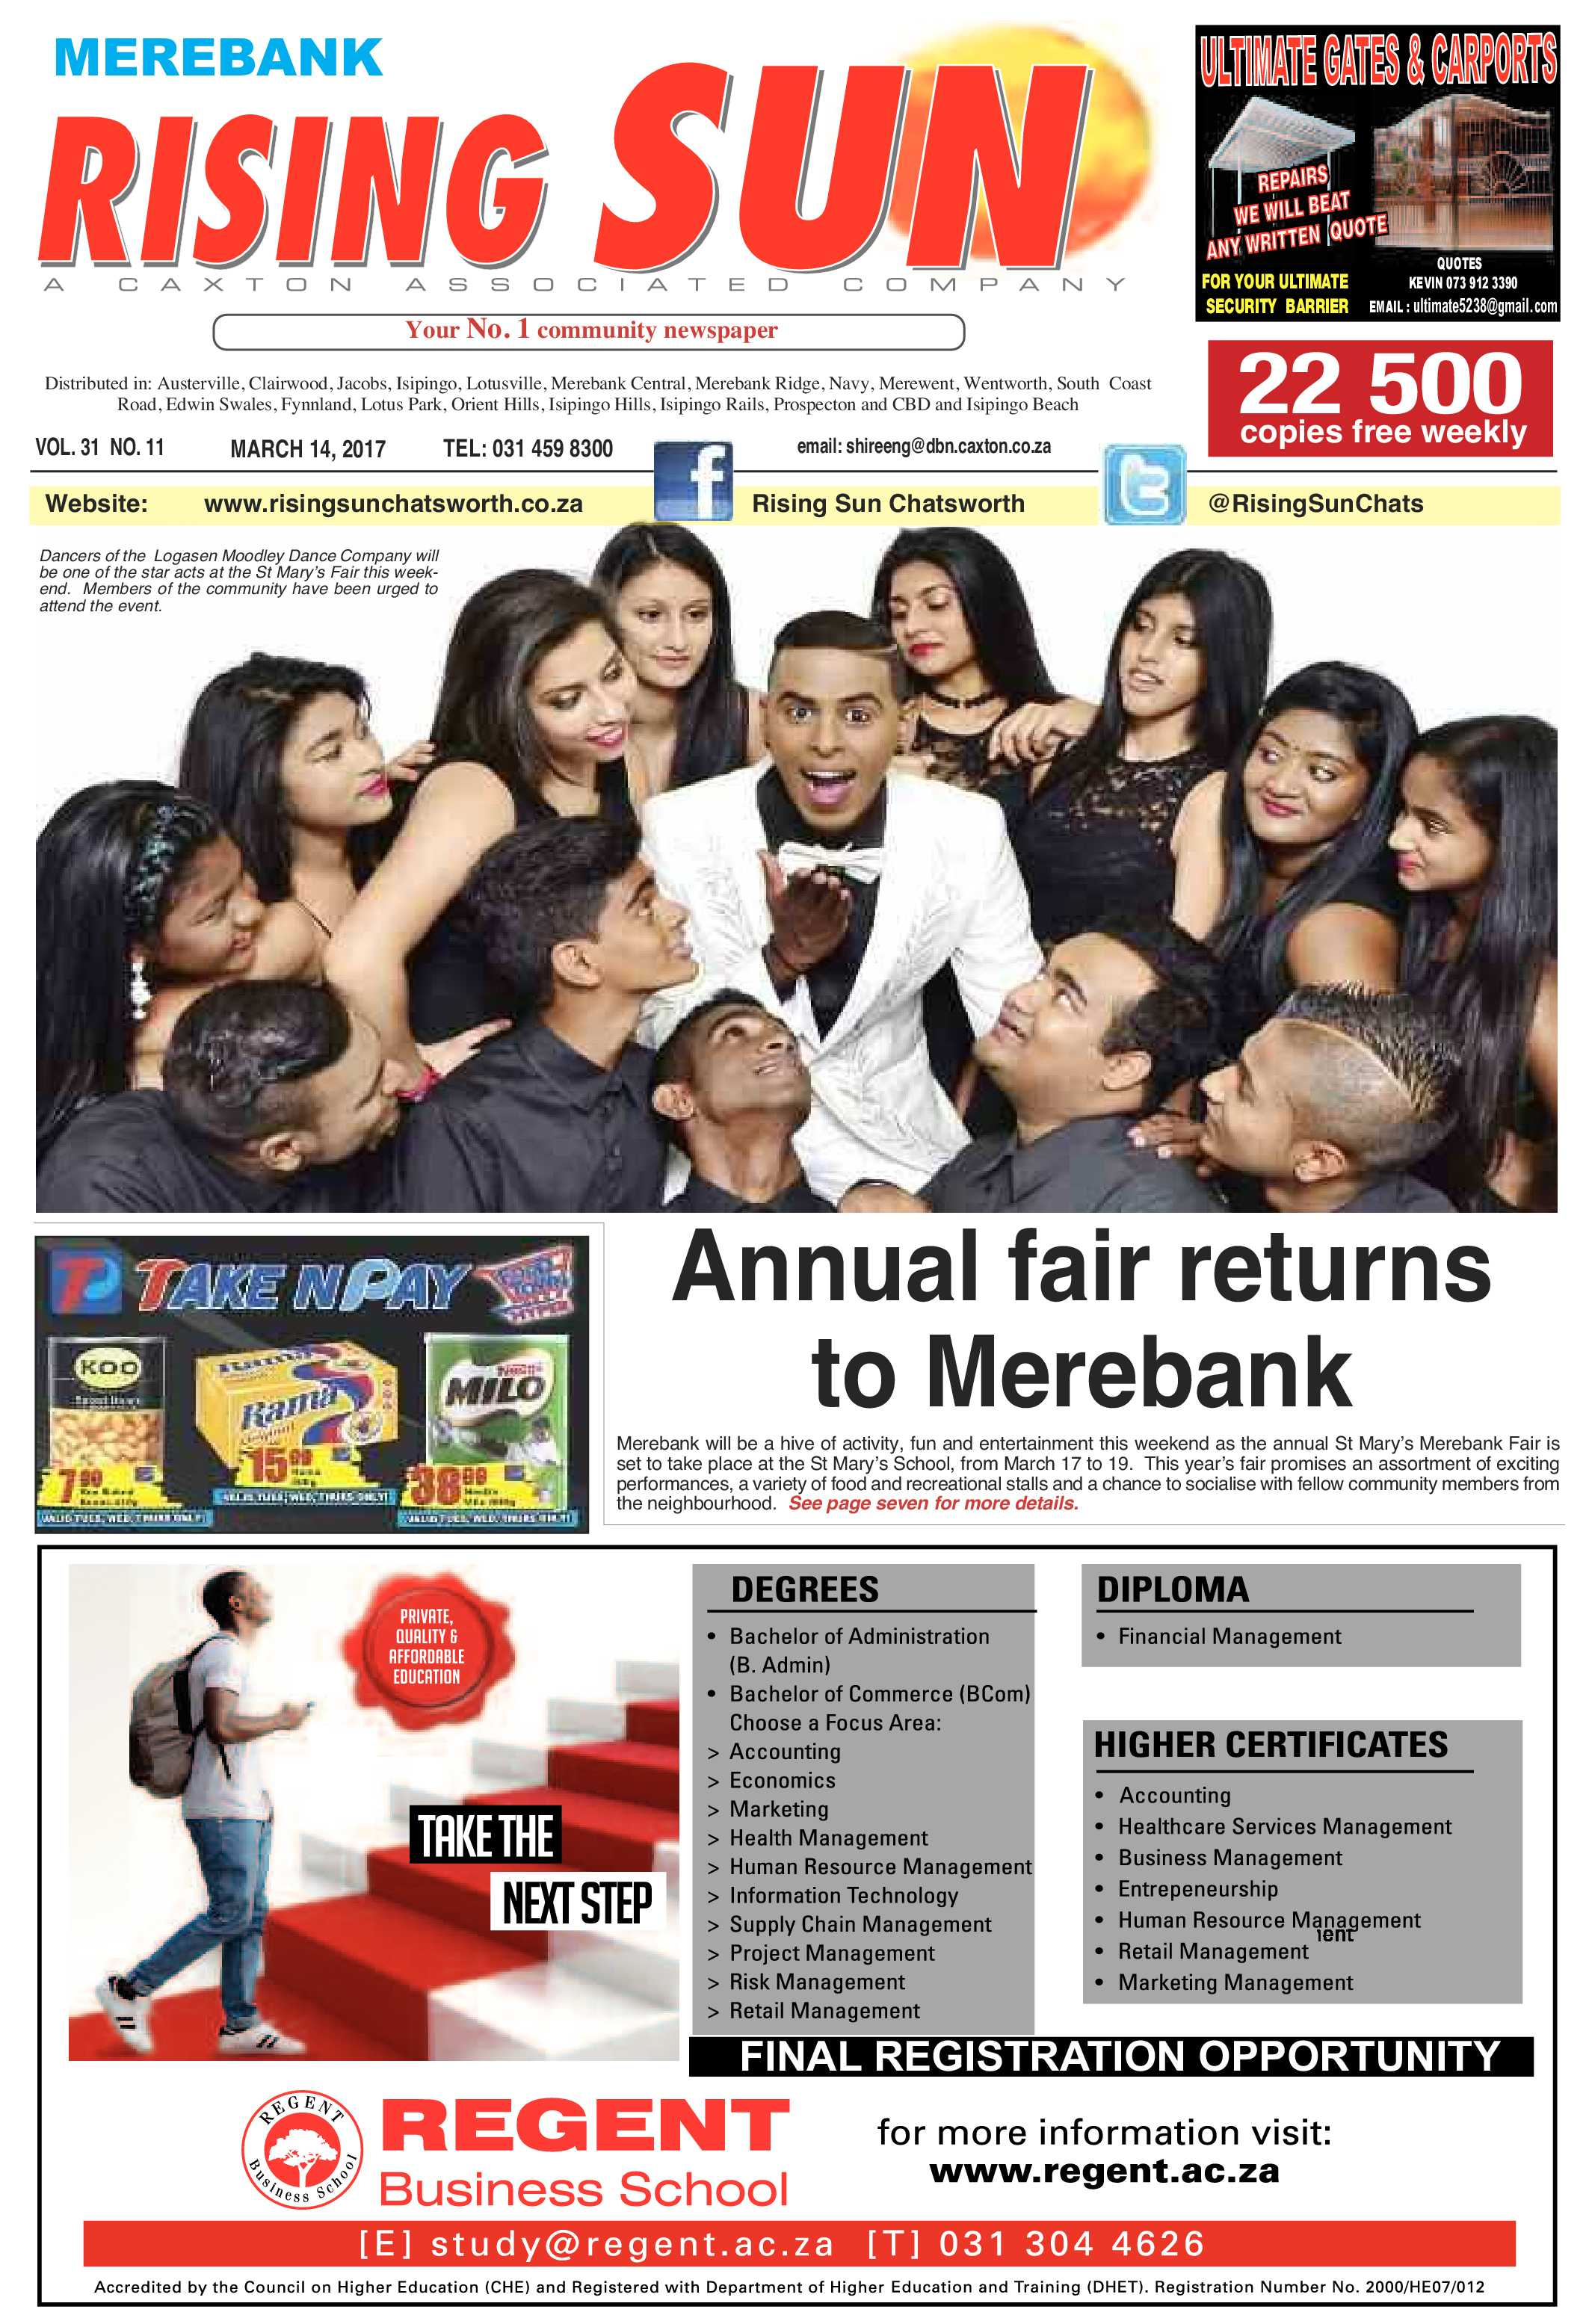 annual-fair-returns-merebank-epapers-page-1